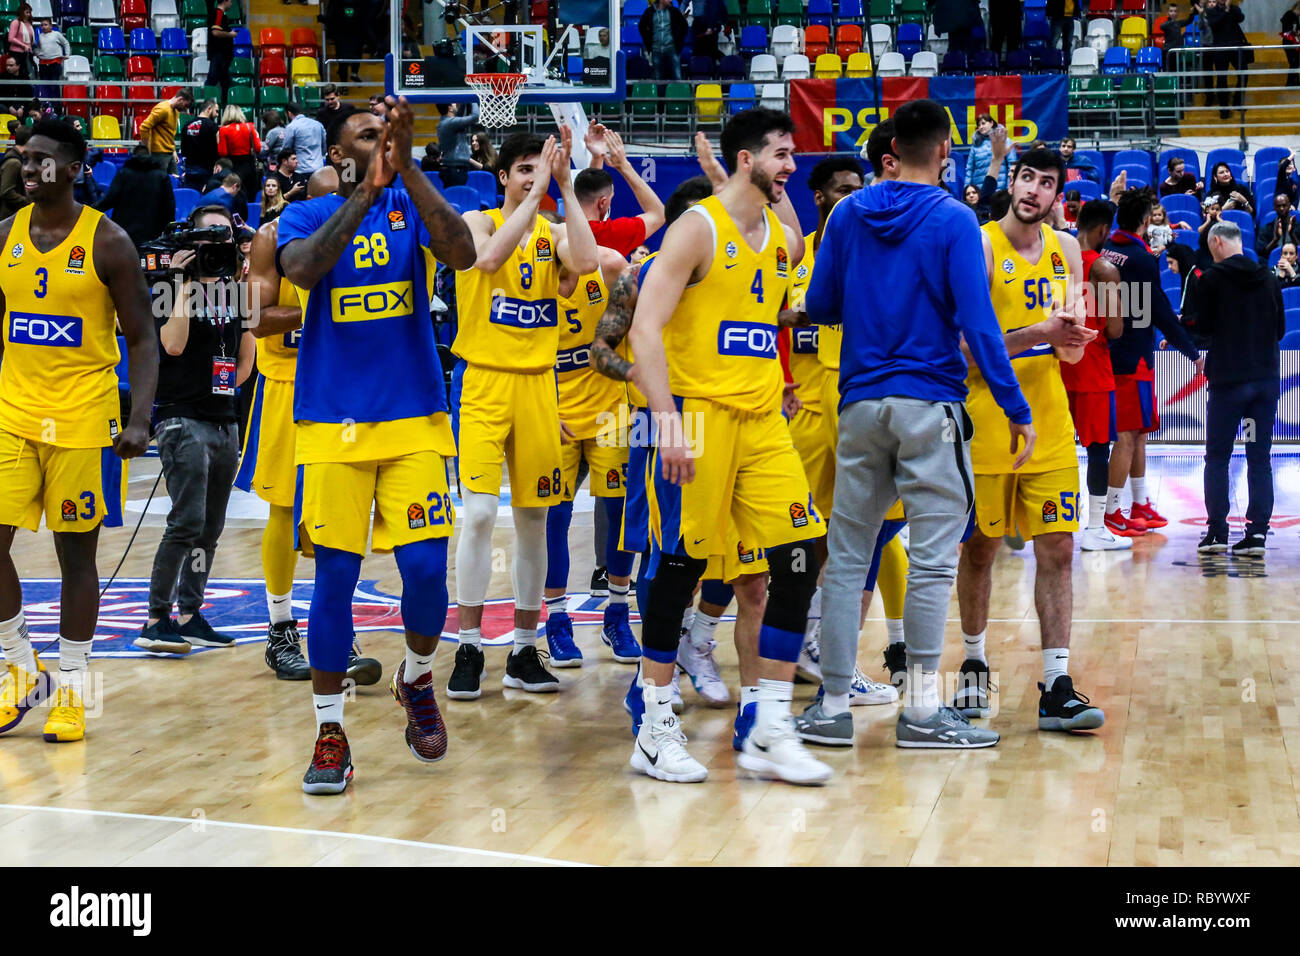 Maccabi Tel Aviv players are seen celebrating after defeating CSKA Moscow in Round 18 during the Turkish Airlines Euroleague game of the 2018-2019 season. Maccabi Tel Aviv beat CSKA Moscow, 93-76. - Stock Image